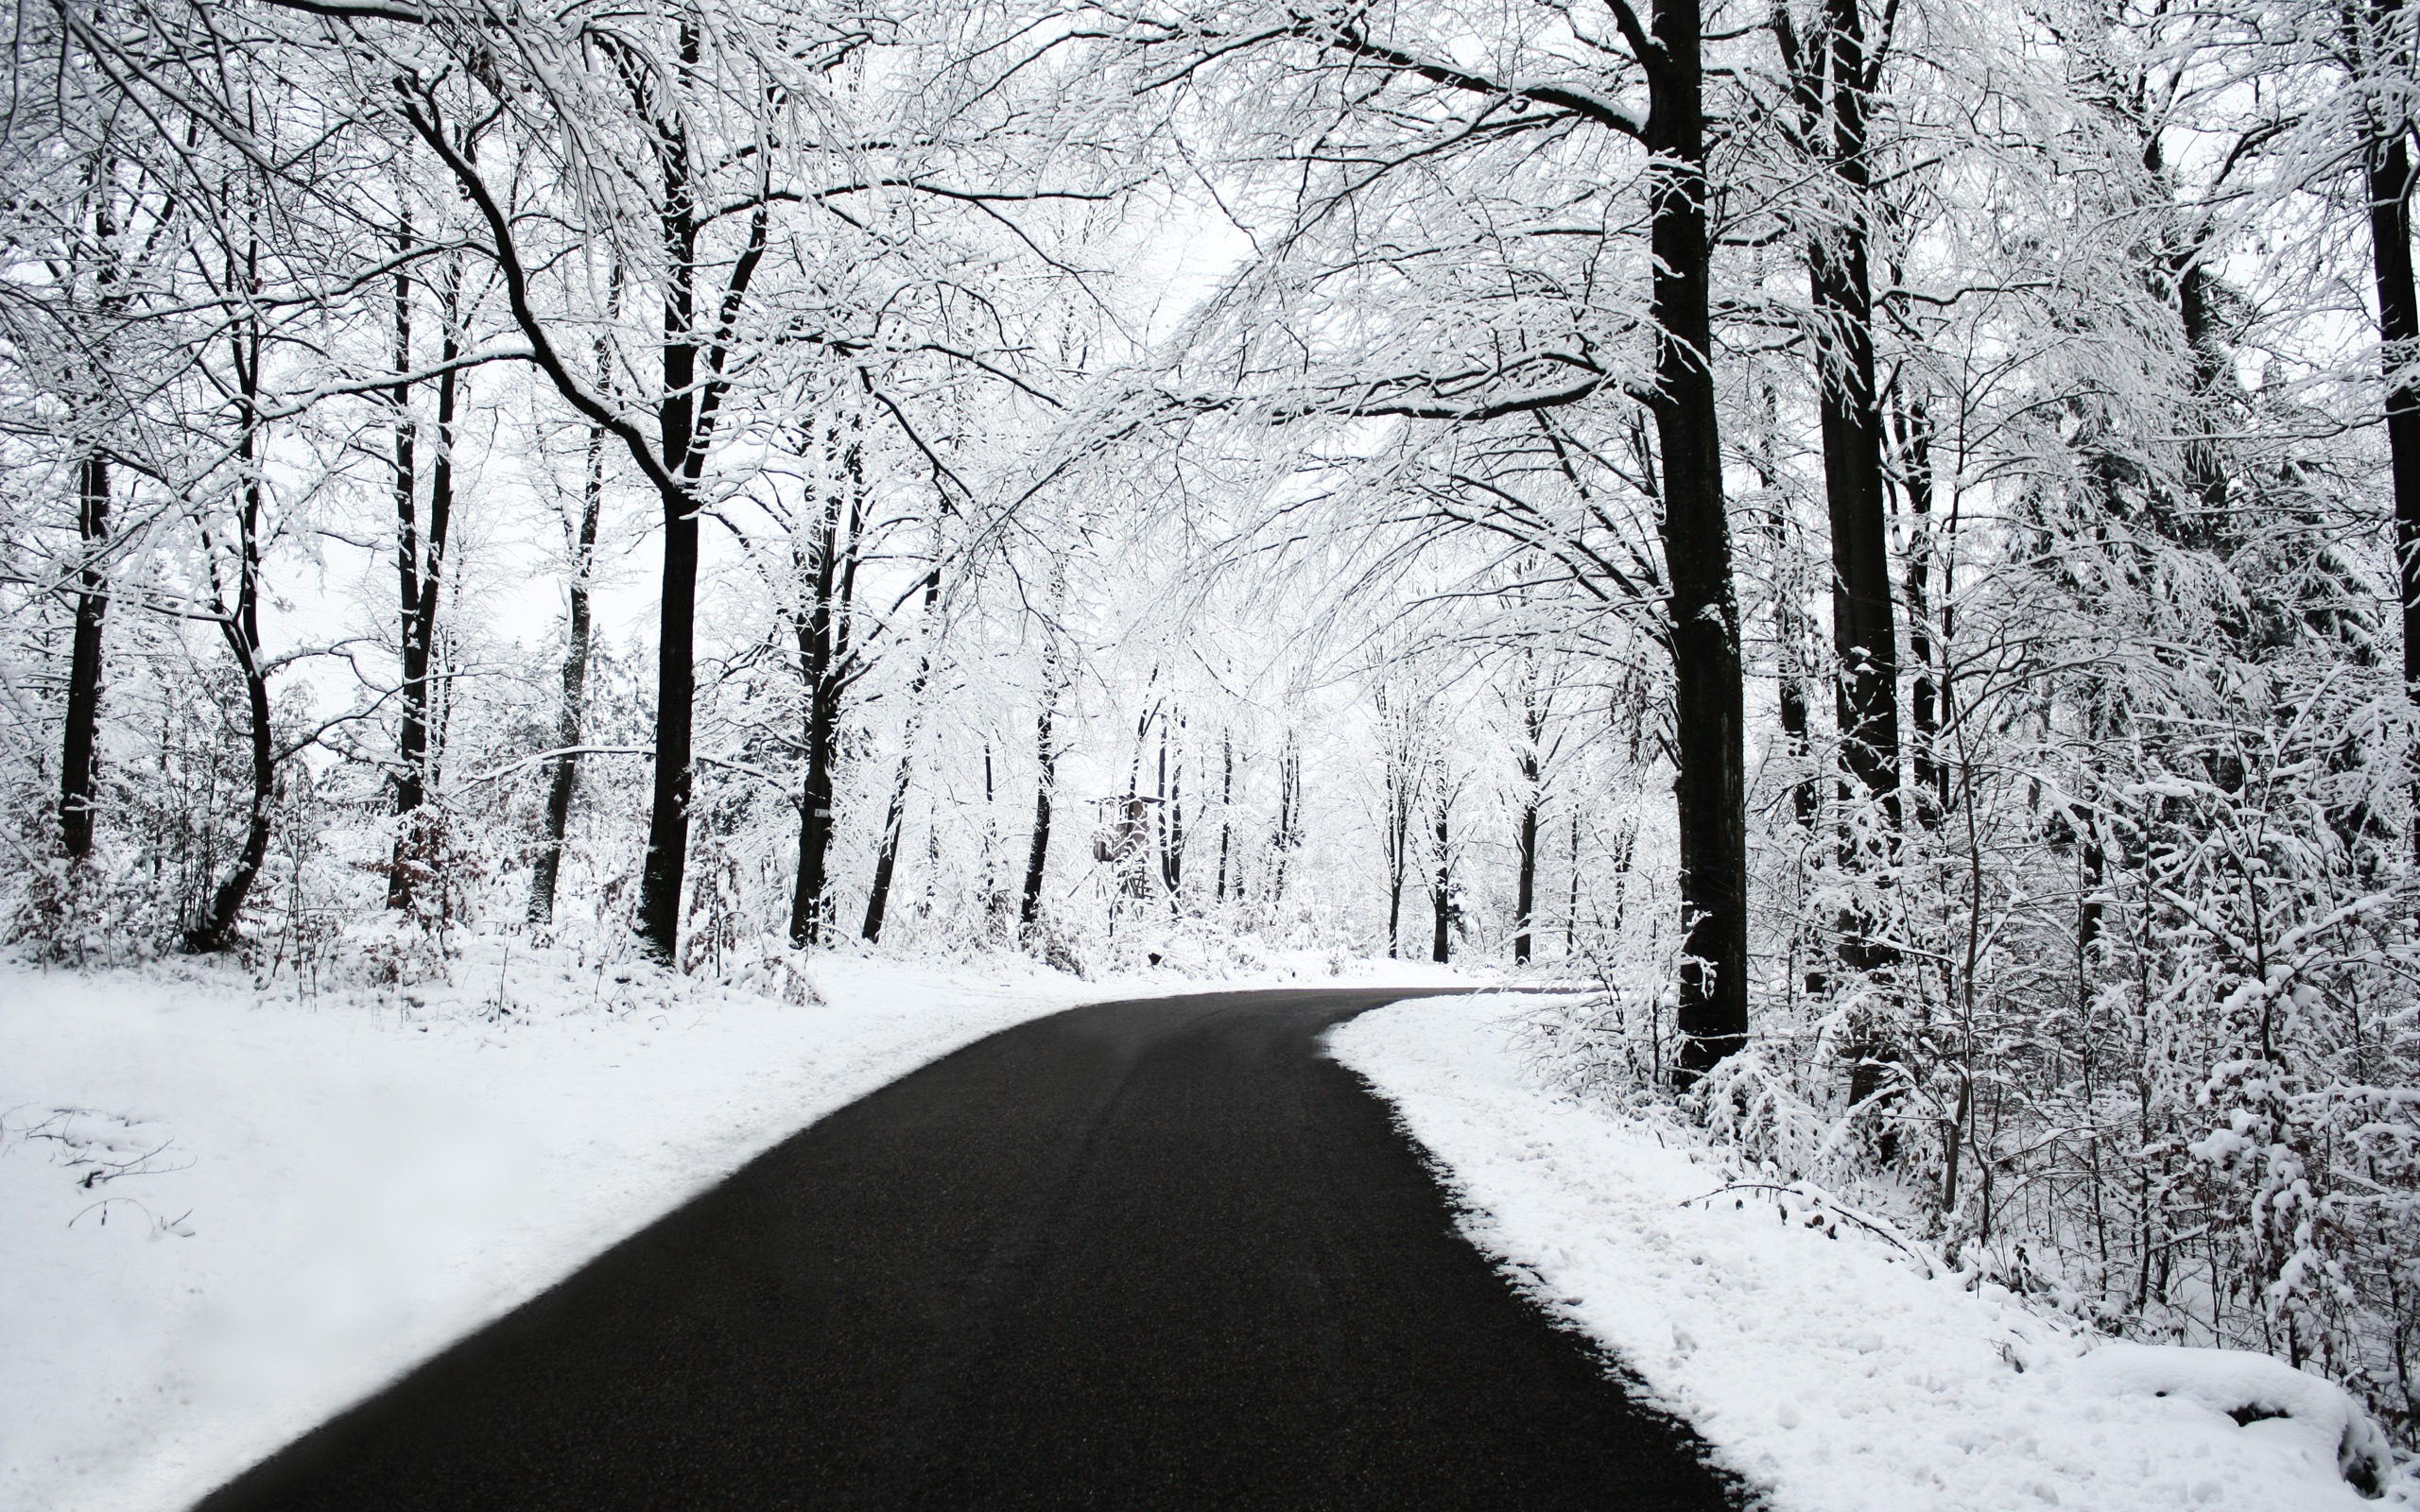 Winter road / 2560 x 1600 / Forest / Photography | MIRIADNA.COM